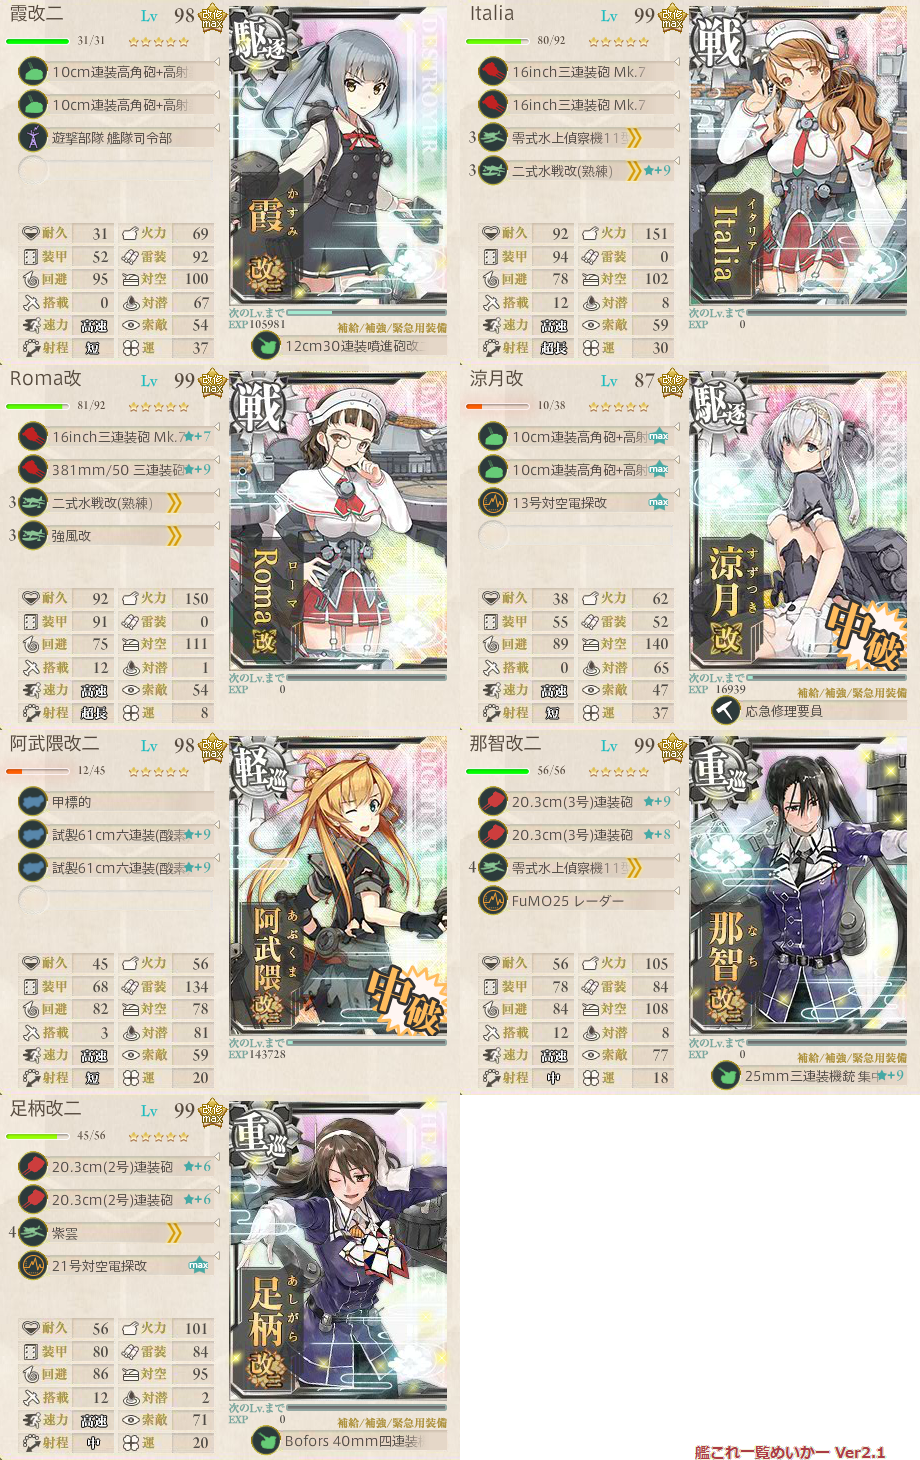 kancolle_20180304-12.png